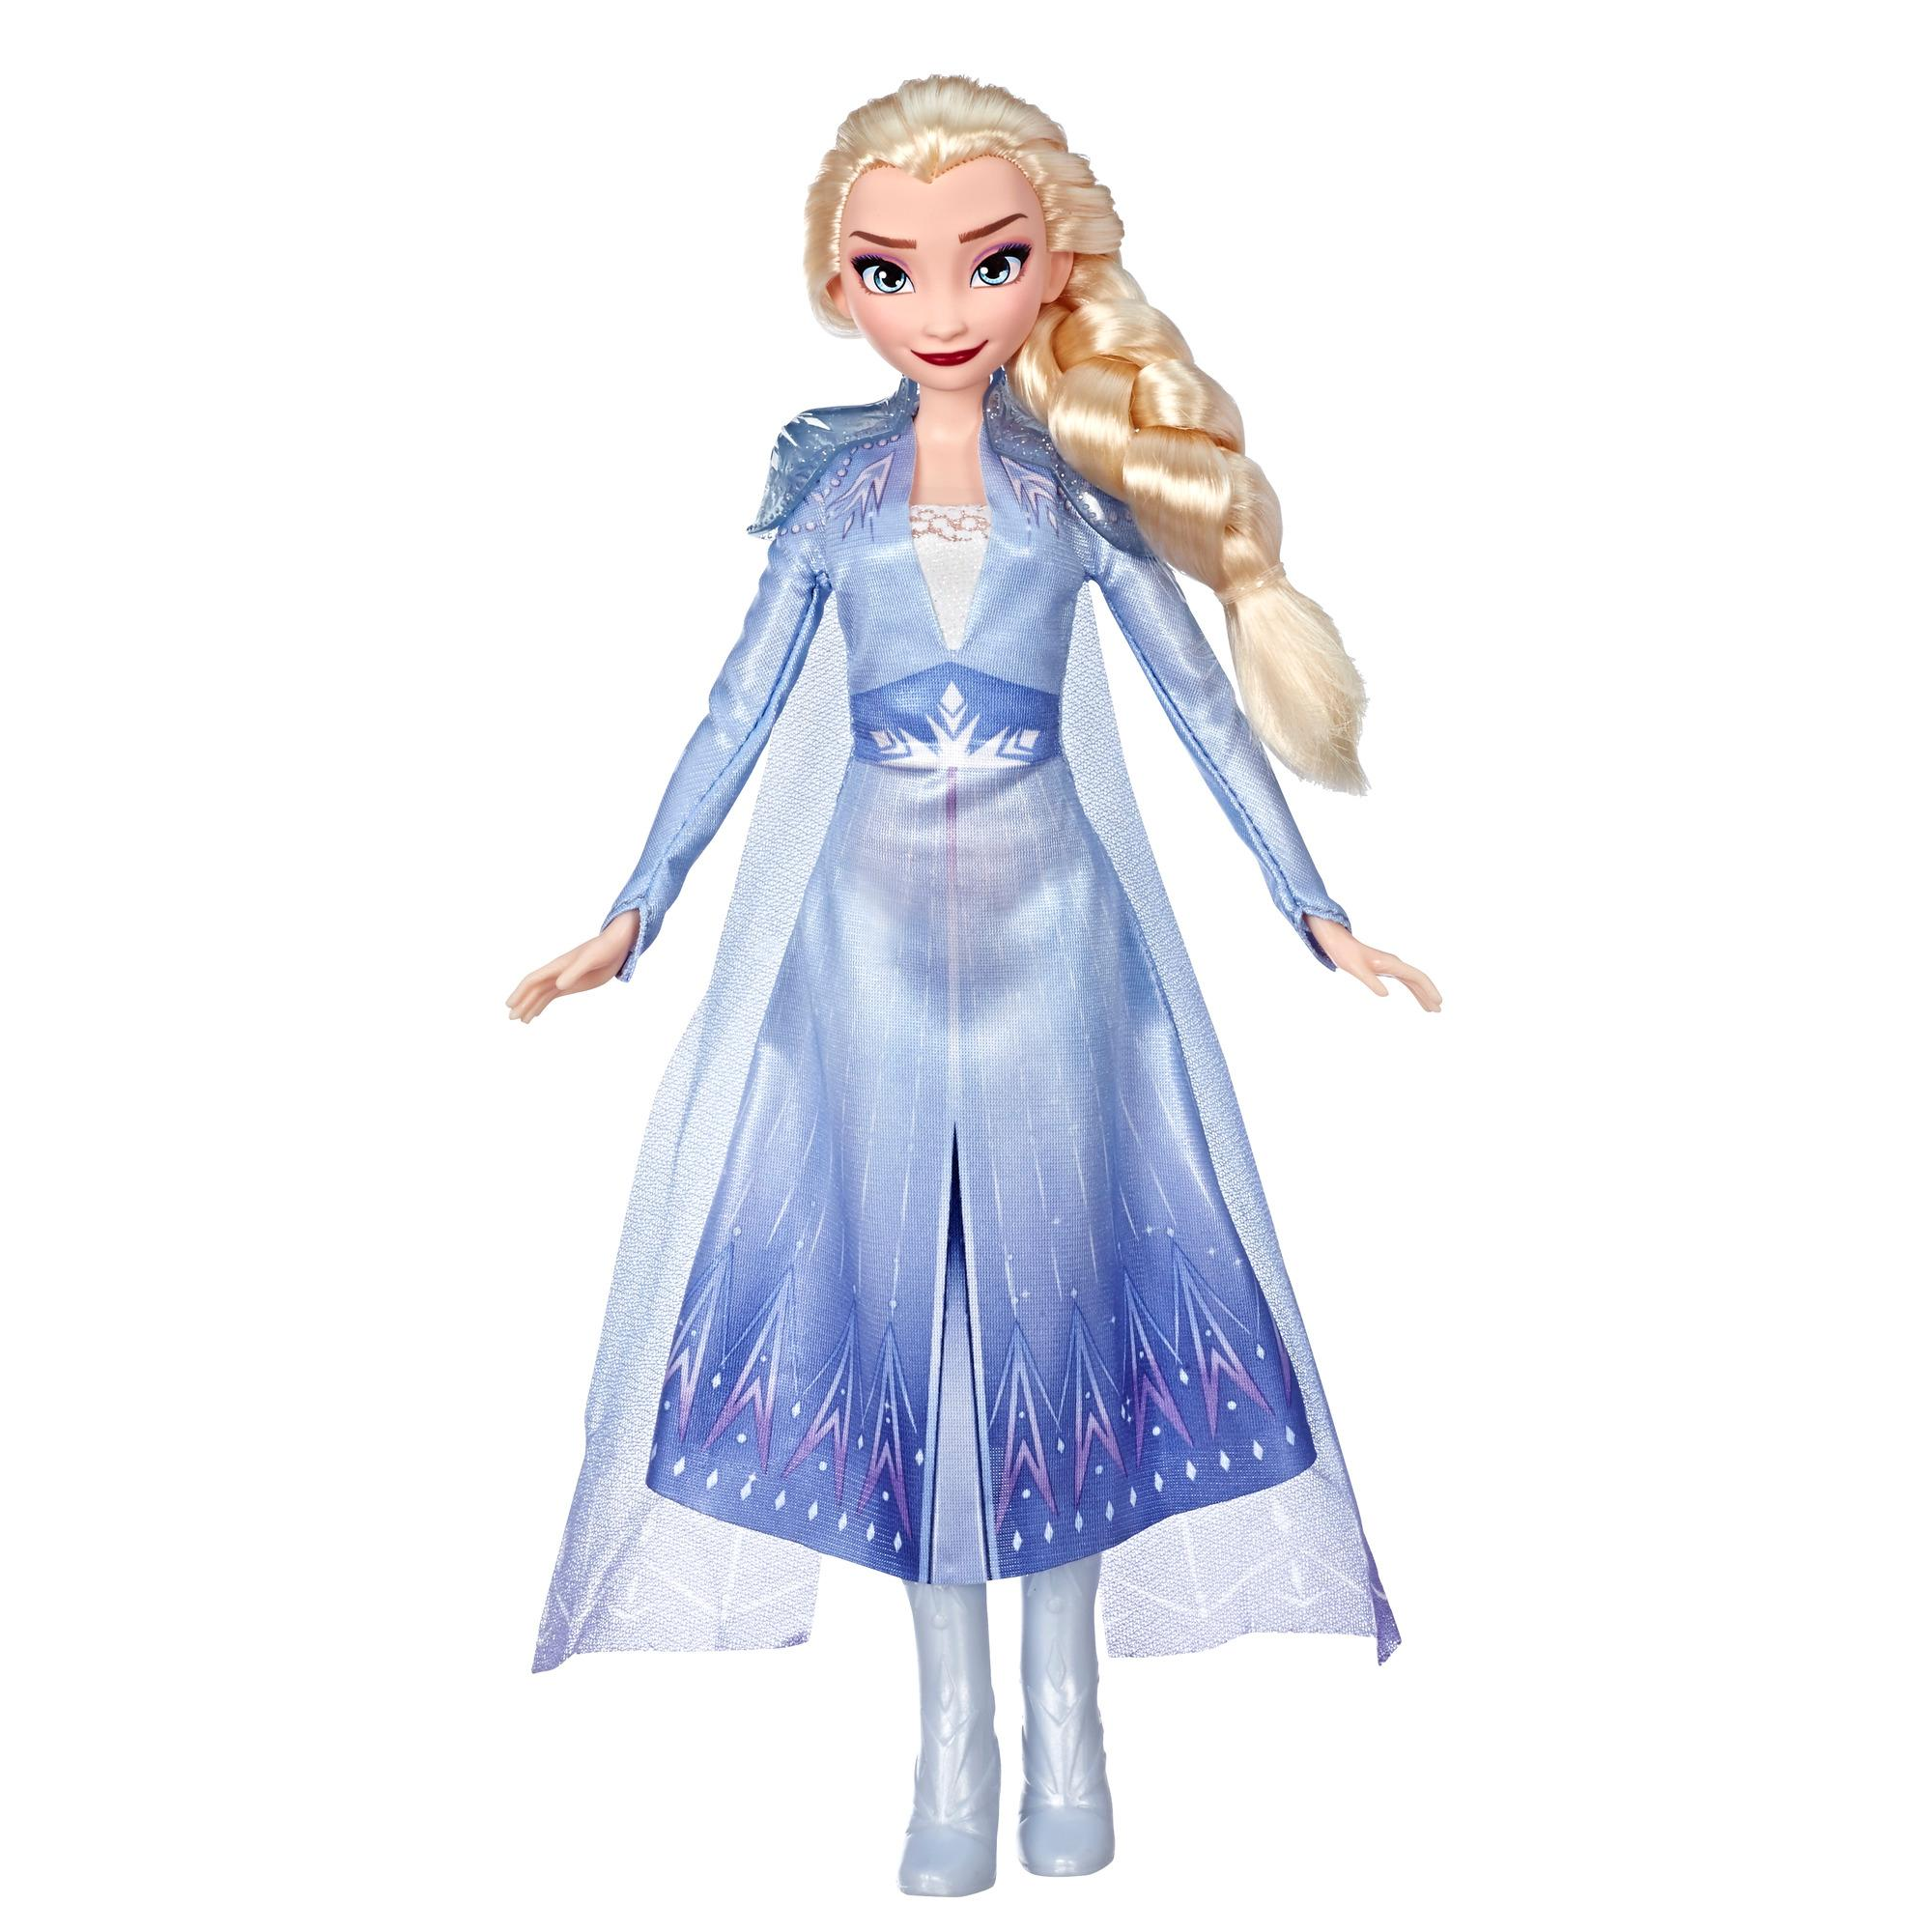 Disney Frozen Elsa Fashion Doll With Long Blonde Hair and Blue Outfit Inspired by Frozen 2